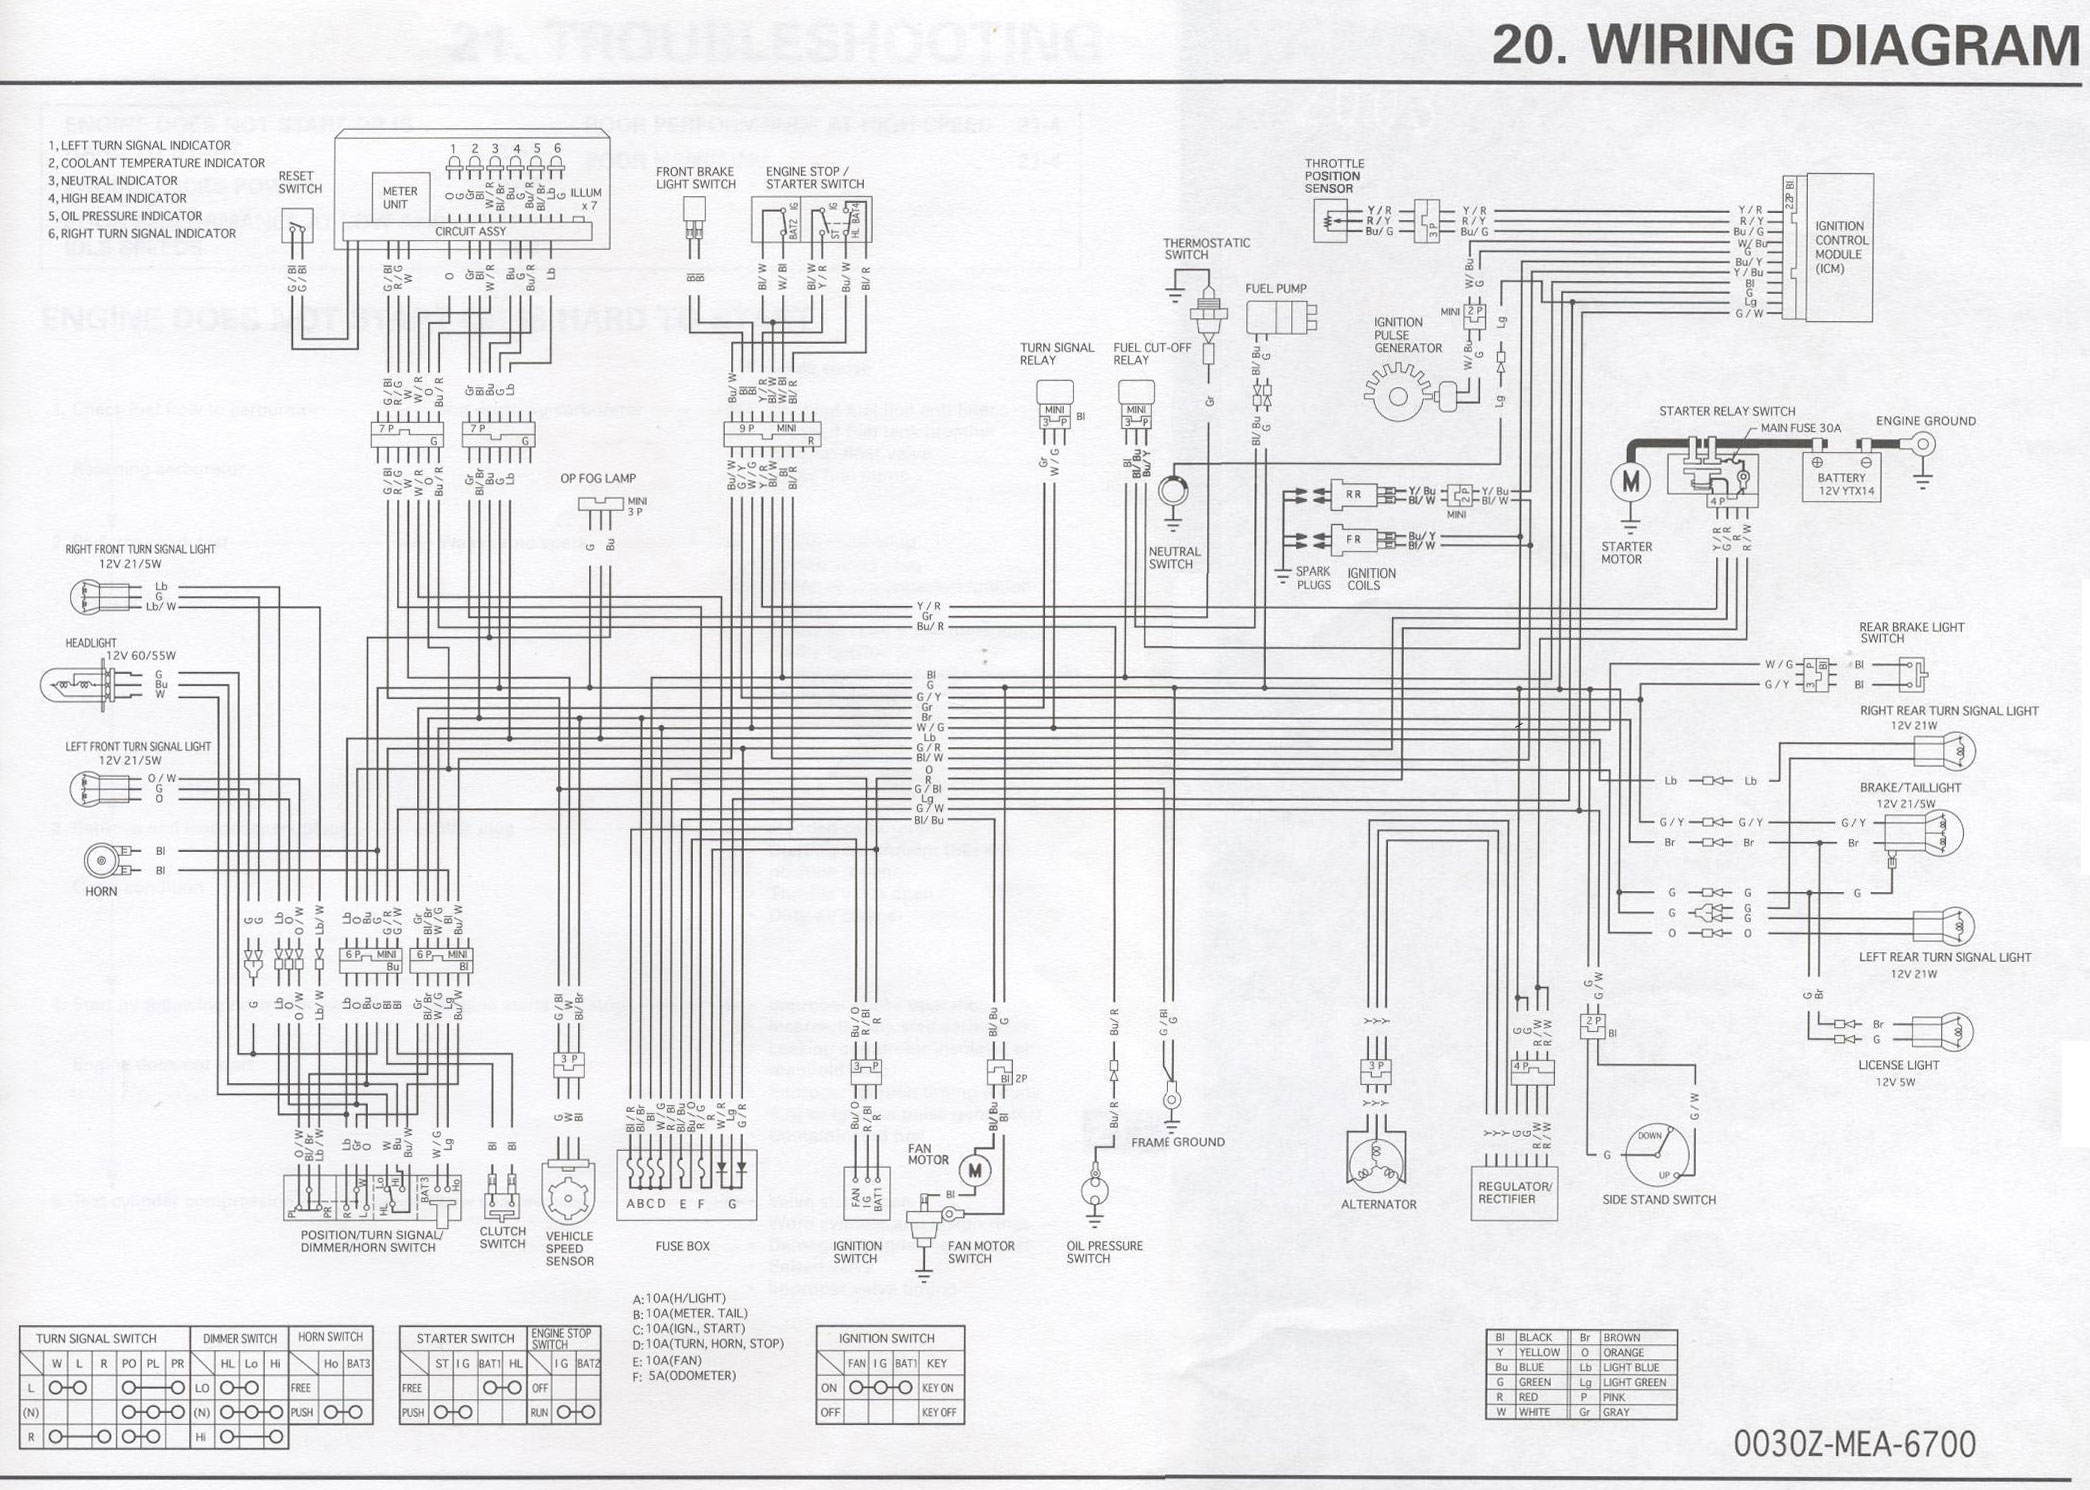 03_VTX1300_schematic motorcycle wire schematics bareass choppers motorcycle tech pages honda vtx 1800 fuse box location at webbmarketing.co